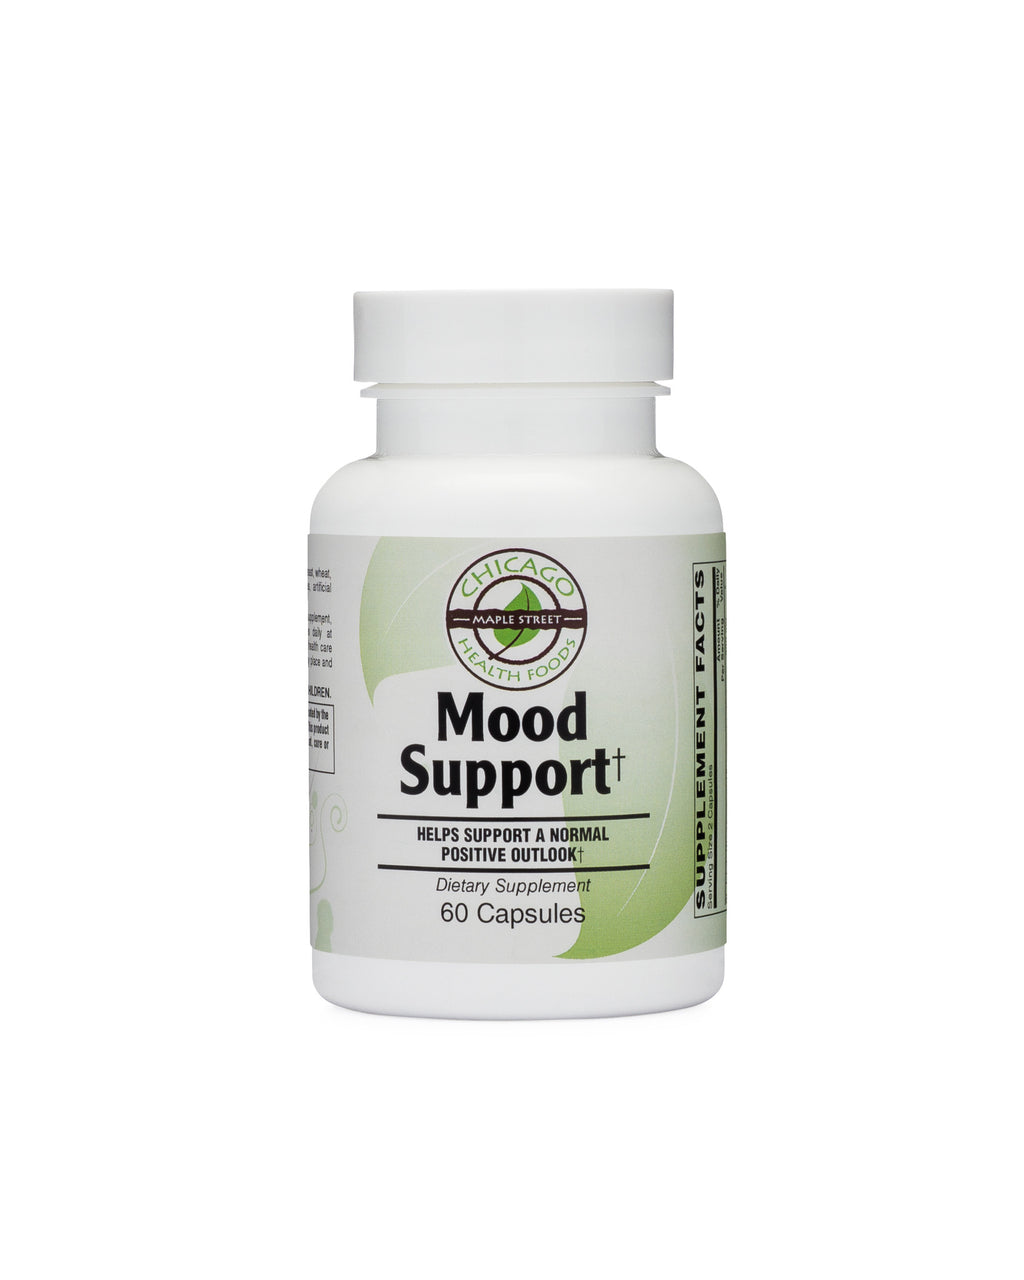 Mood Support helps support positive outlook 60 capsules chicago health